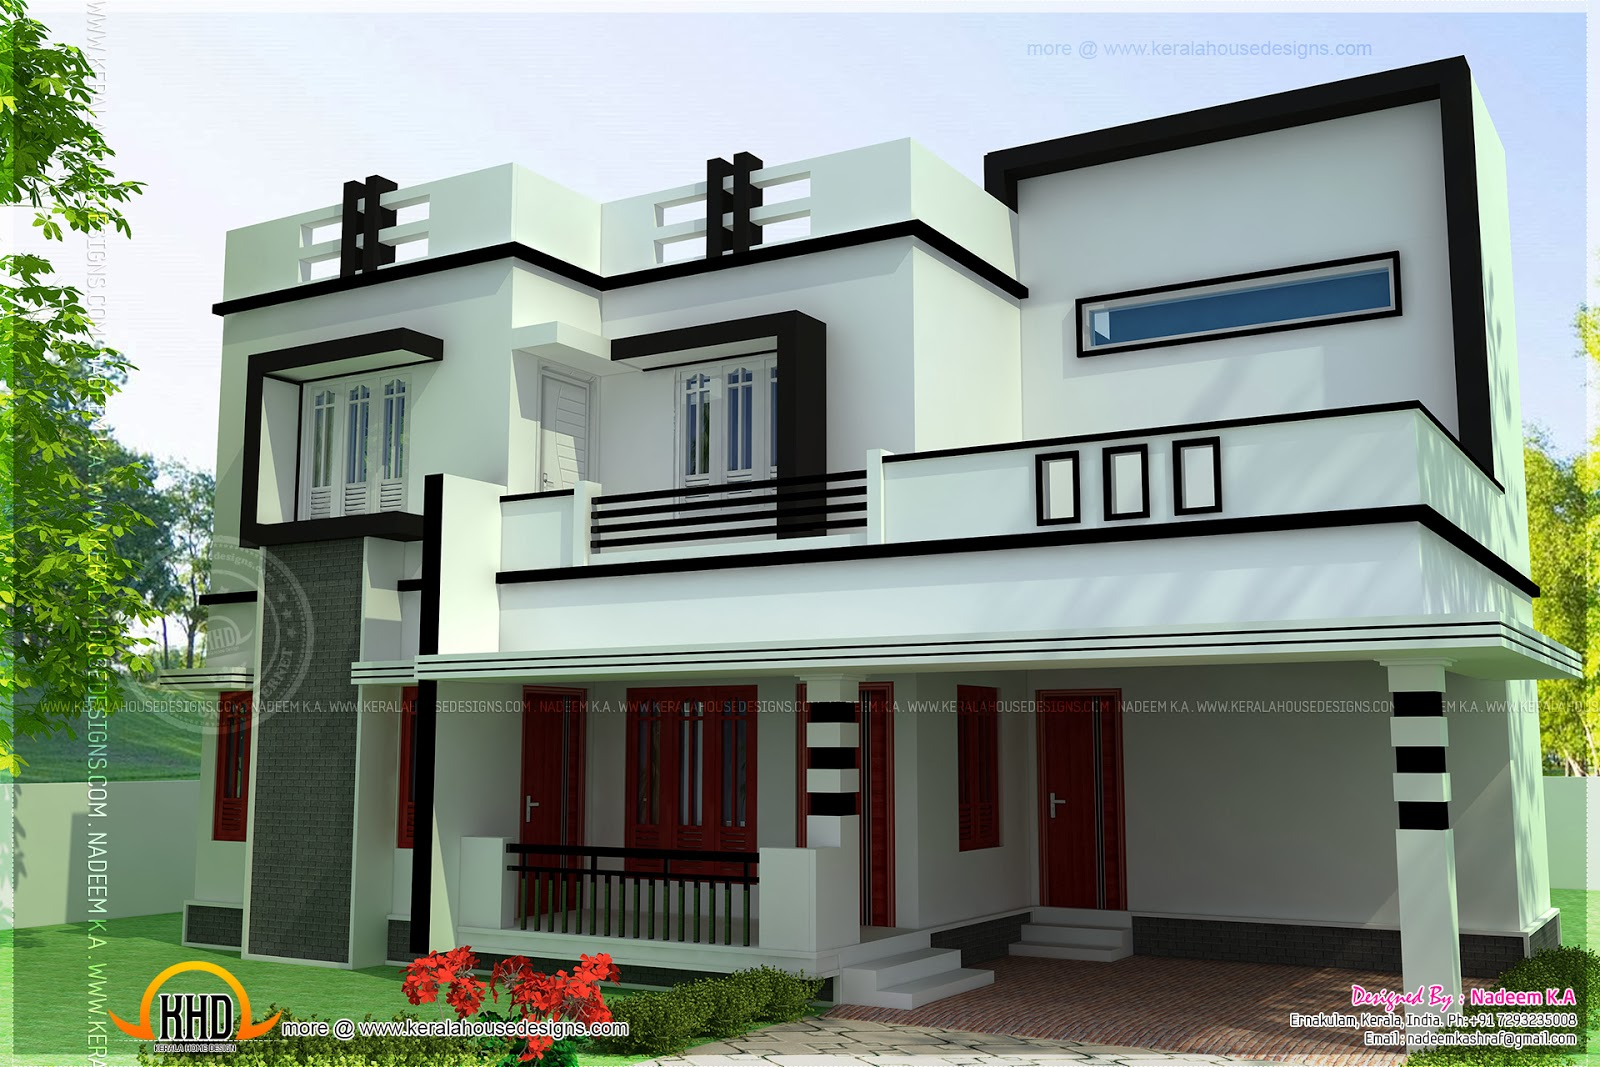 Flat roof 4 bedroom modern house kerala home design and for Kerala home design flat roof elevation